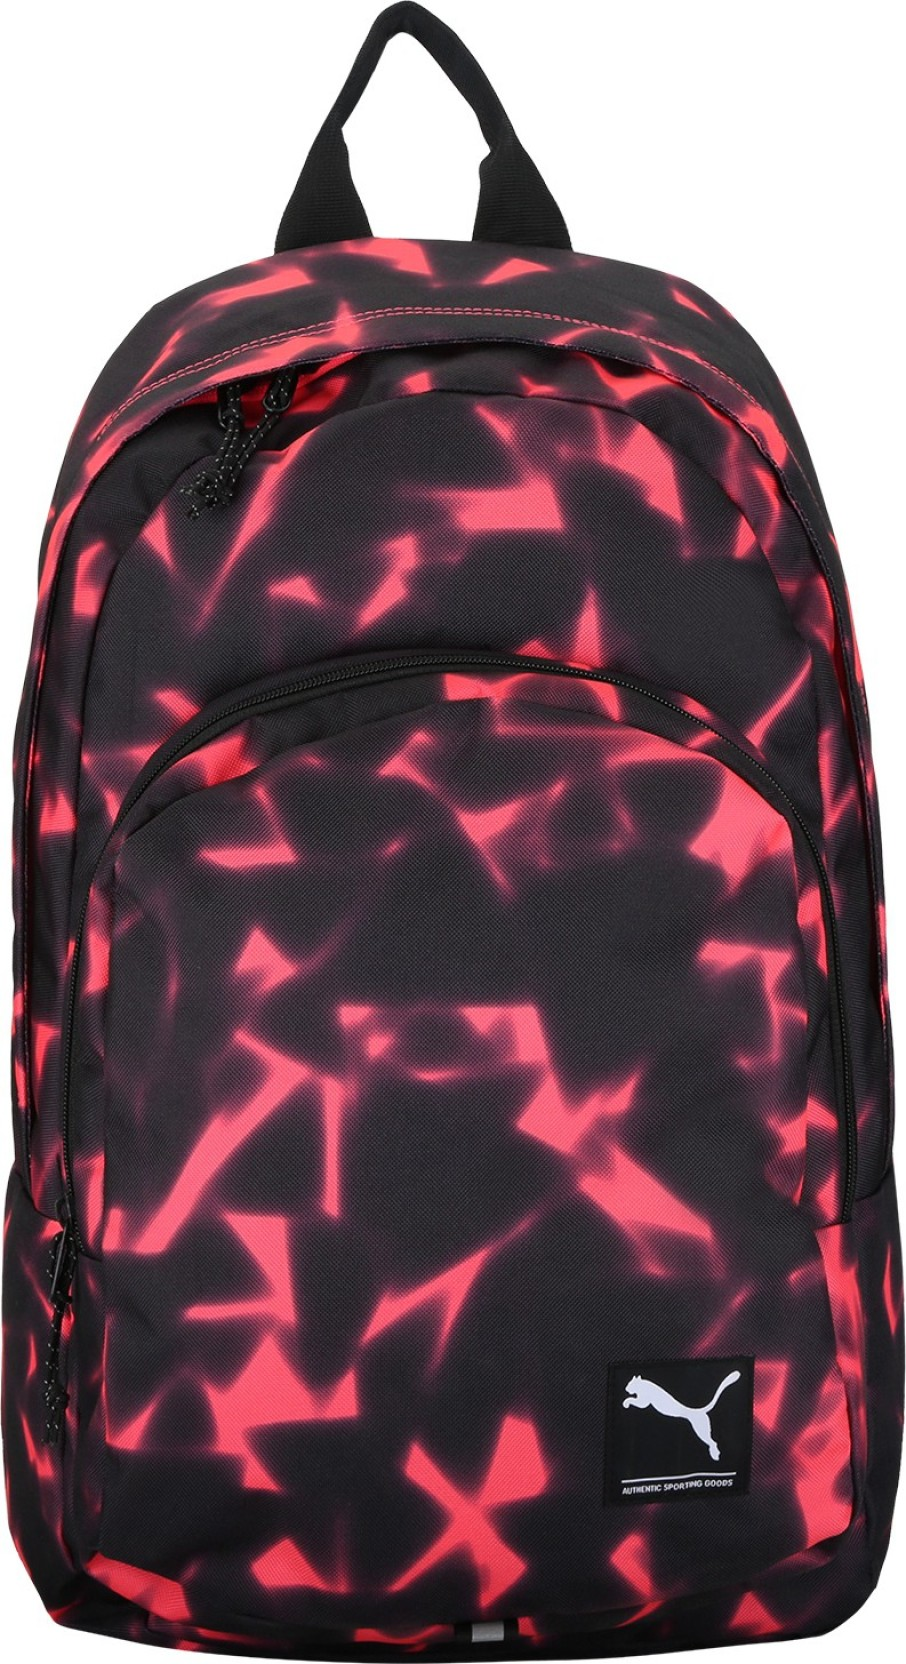 8c8a87307753 Puma Academy 26 L Laptop Backpack Bright Plasma-shard - Price in ...